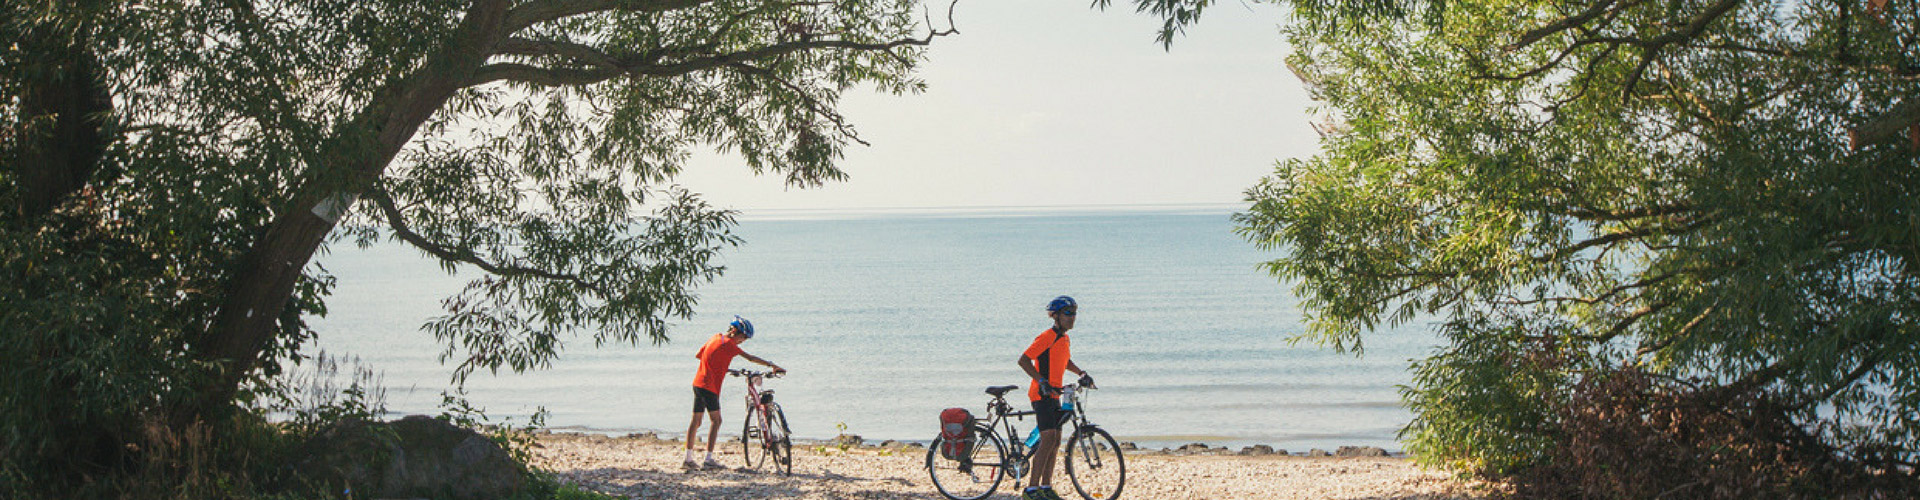 Two cyclists at beach with bikes